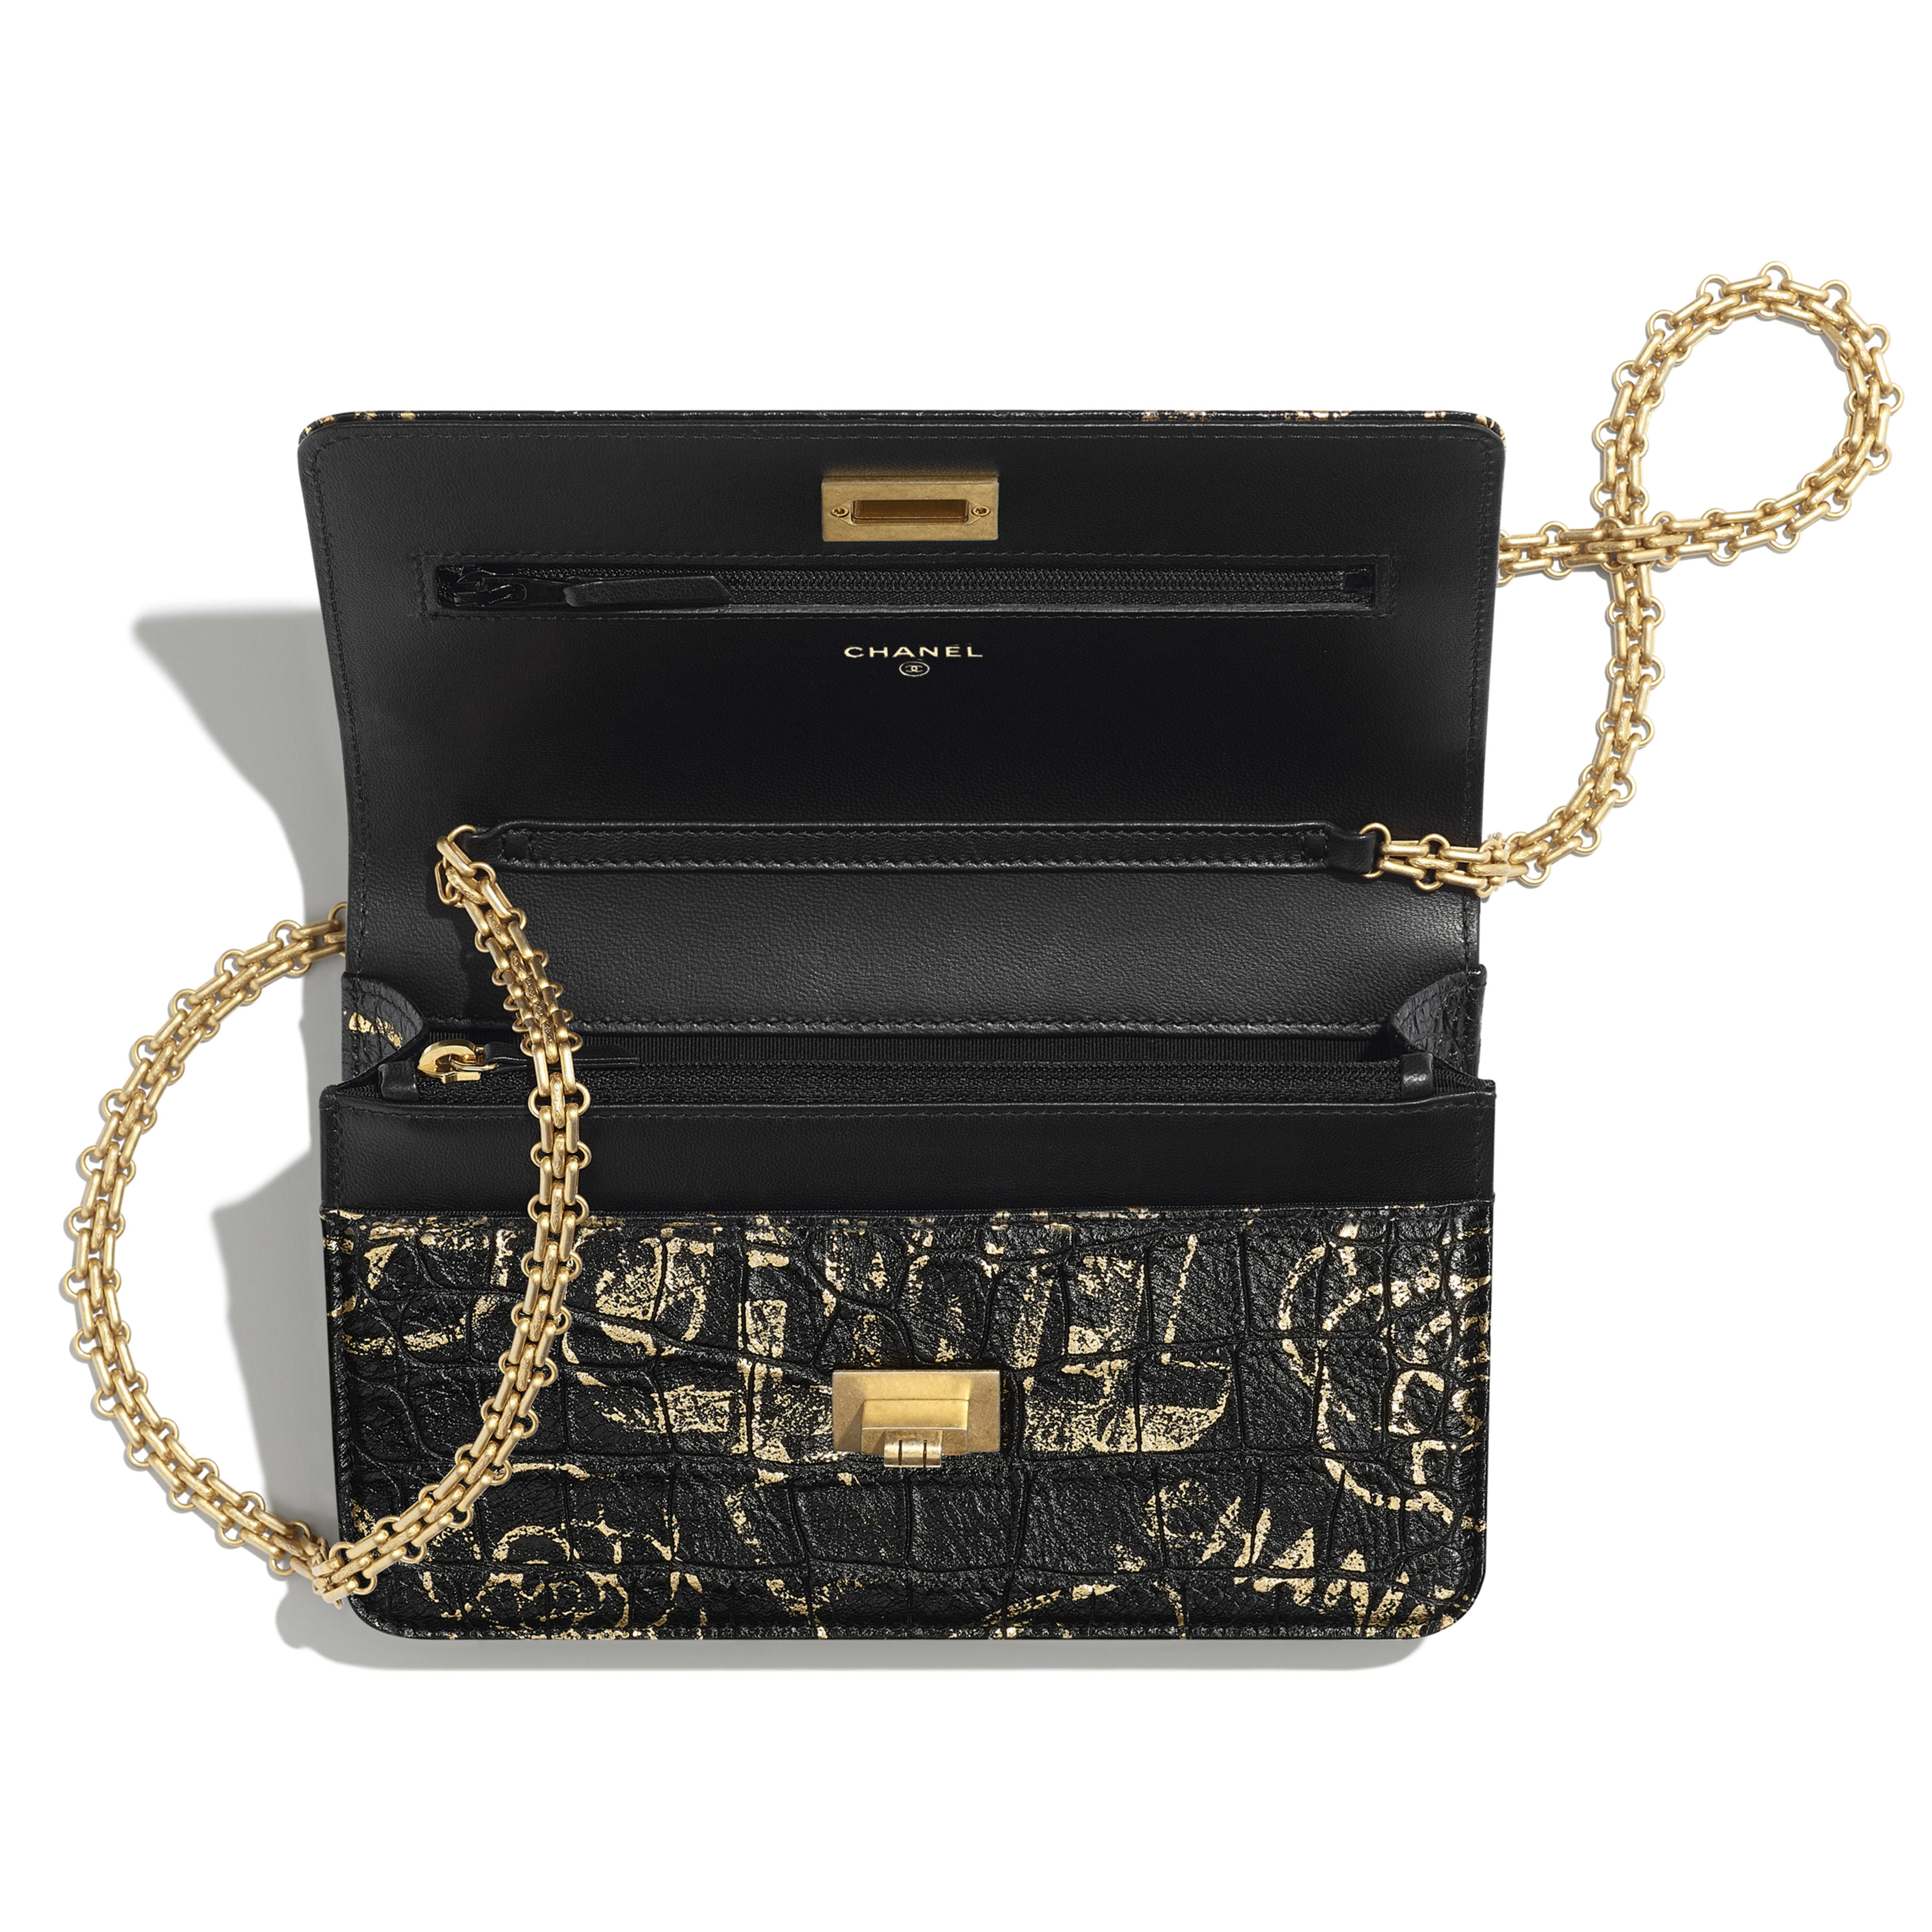 2.55 Wallet on Chain - Black & Gold - Crocodile Embossed Printed Leather & Gold-Tone Metal - Other view - see full sized version